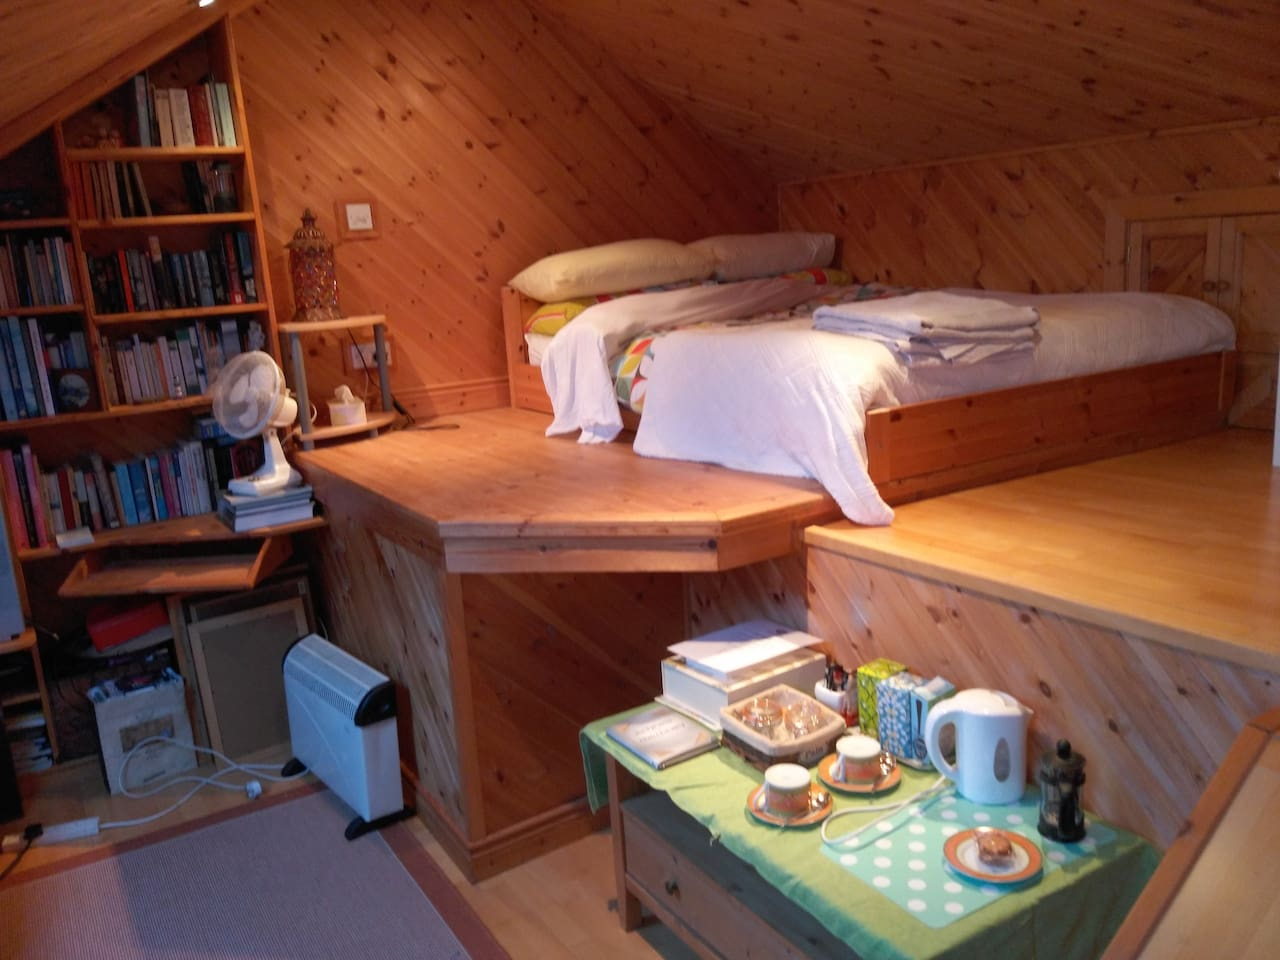 Choose to stay with us in our cosy attic bedroom, complete with ensuite and futon - stay for a day, a week, a month - get away from it all in this quiet house which is within easy reach of all that is wonderful in this part of West Cork!